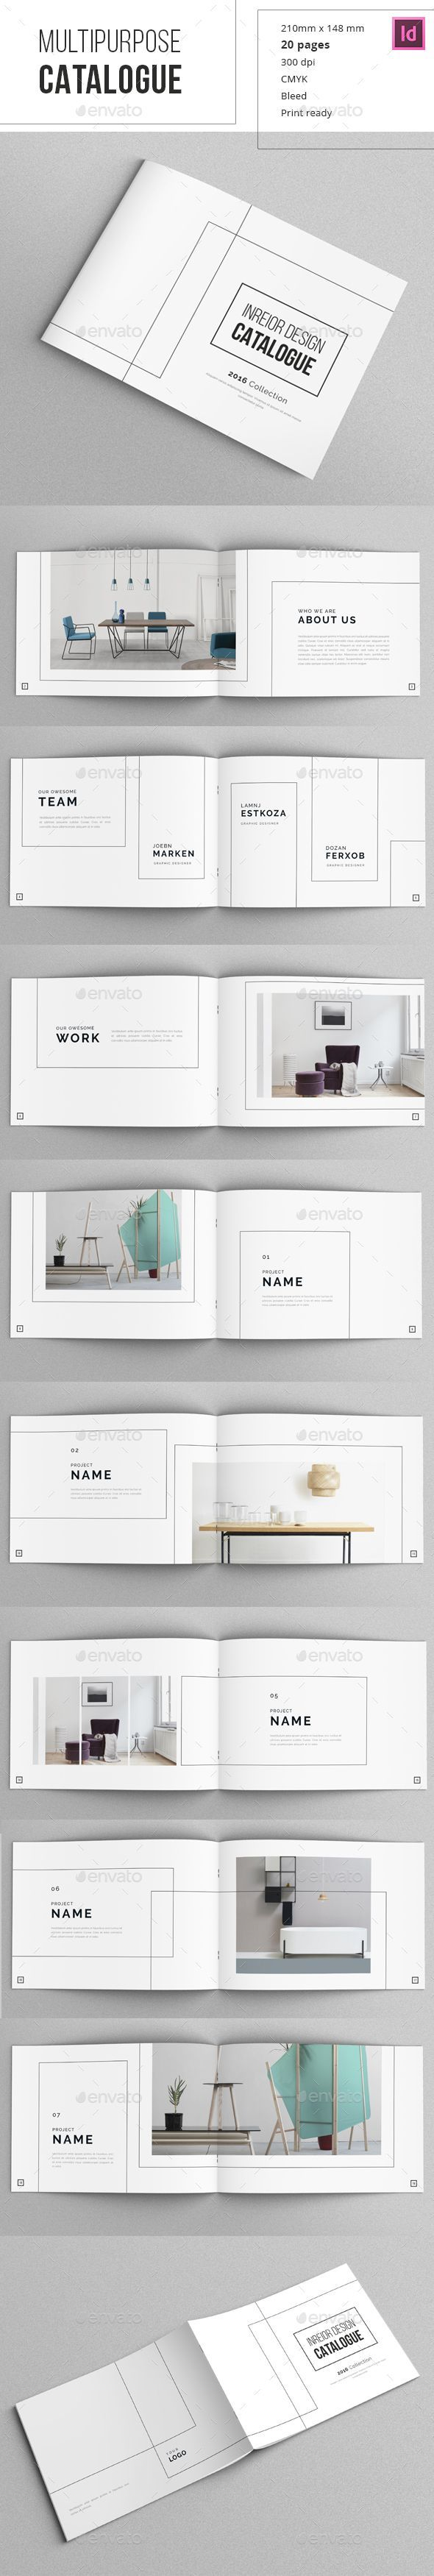 Minimal Indesign Catalogue | Minimal, Catalog and Brochures